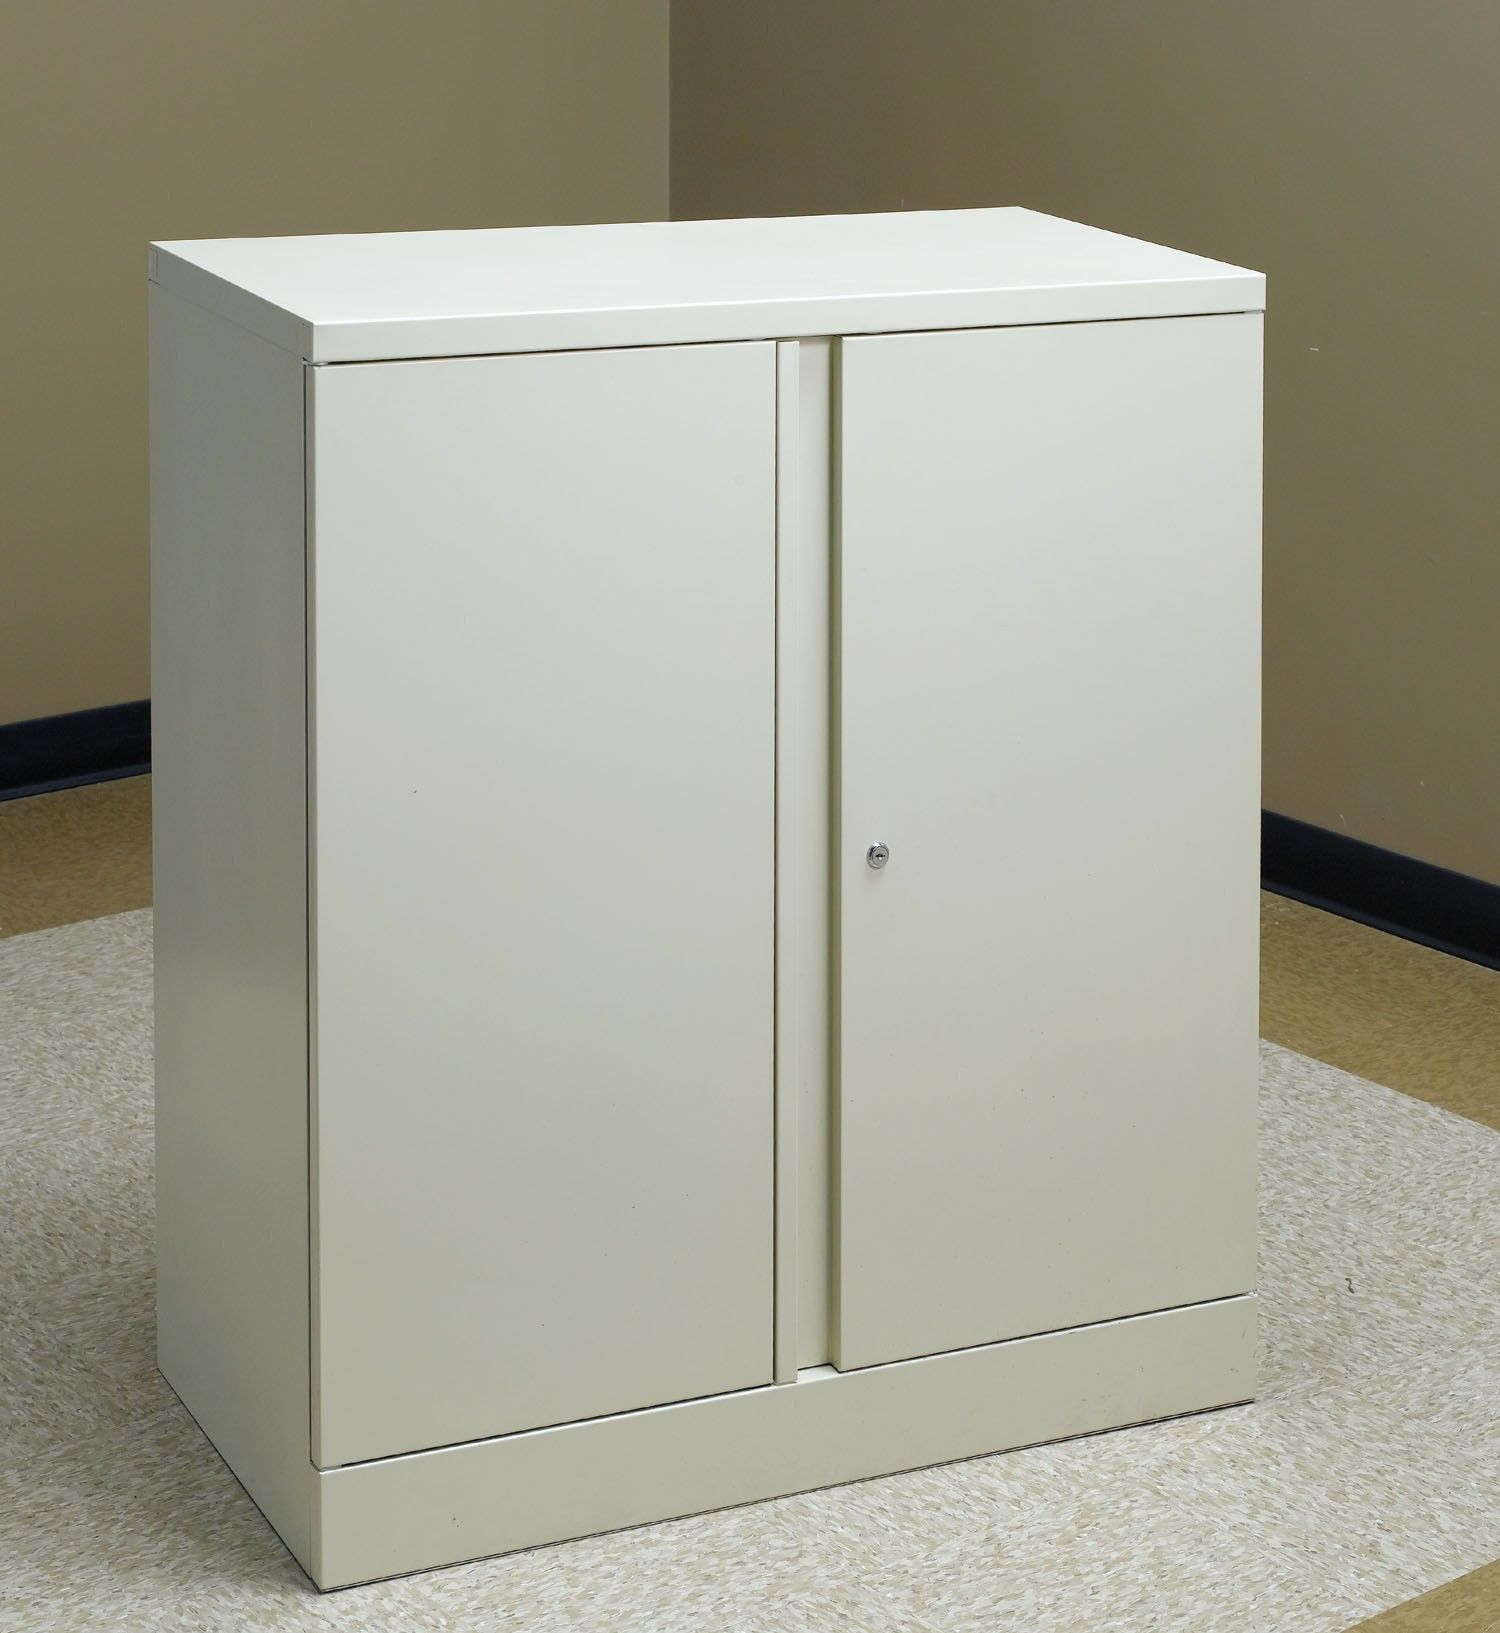 99 Small Storage Cabinet With Lock Kitchen Counter Top Ideas